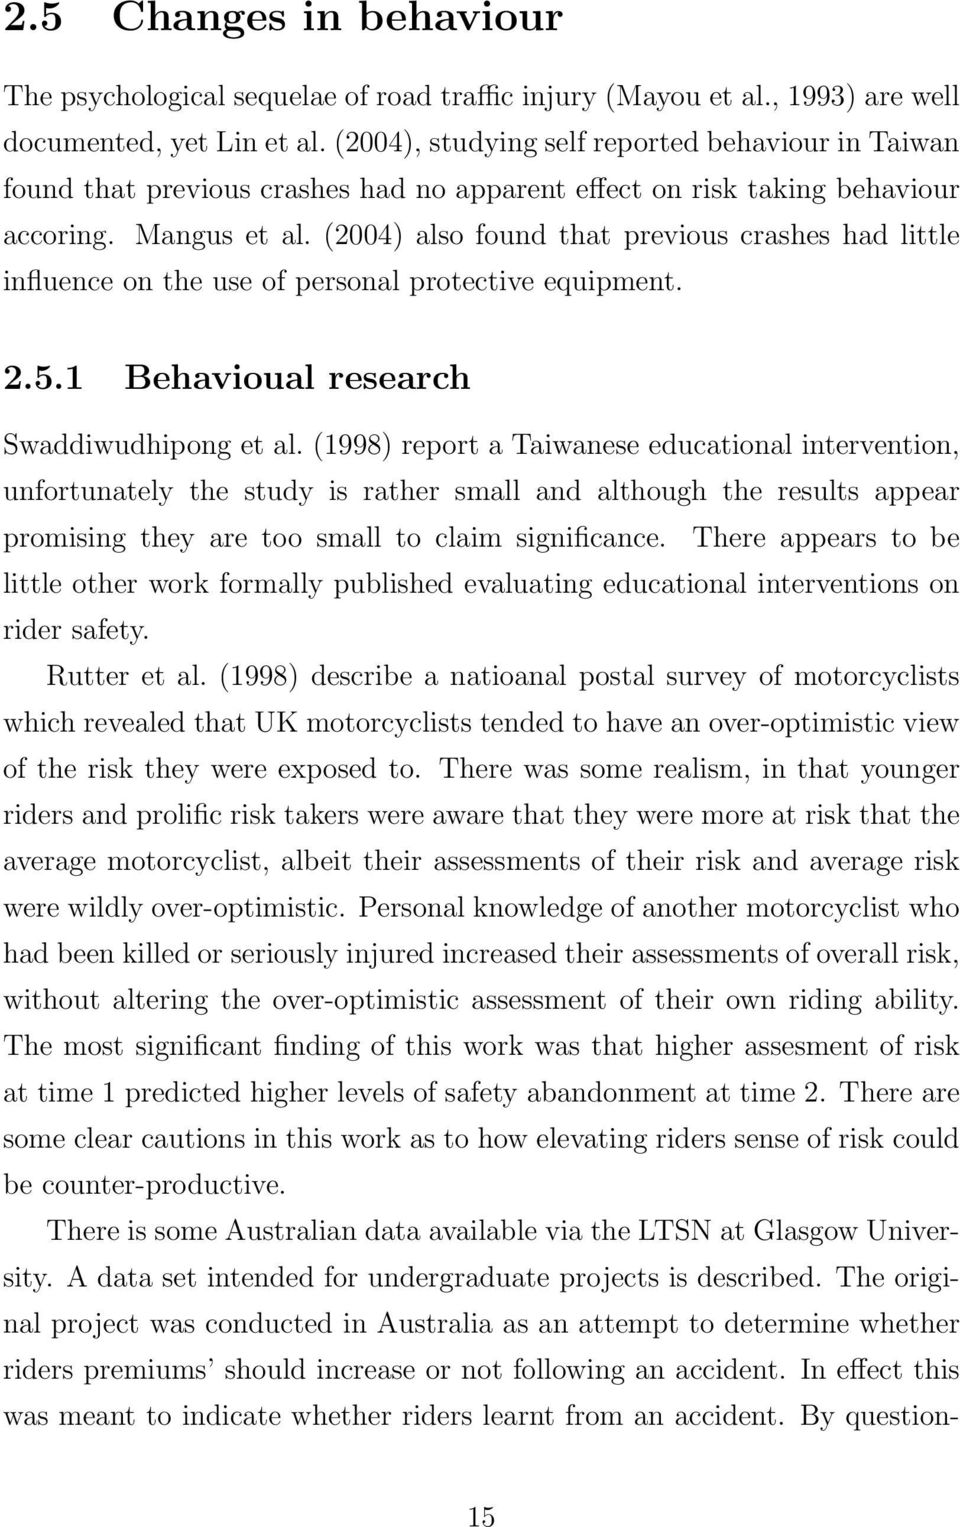 (2004) also found that previous crashes had little influence on the use of personal protective equipment. 2.5.1 Behavioual research Swaddiwudhipong et al.